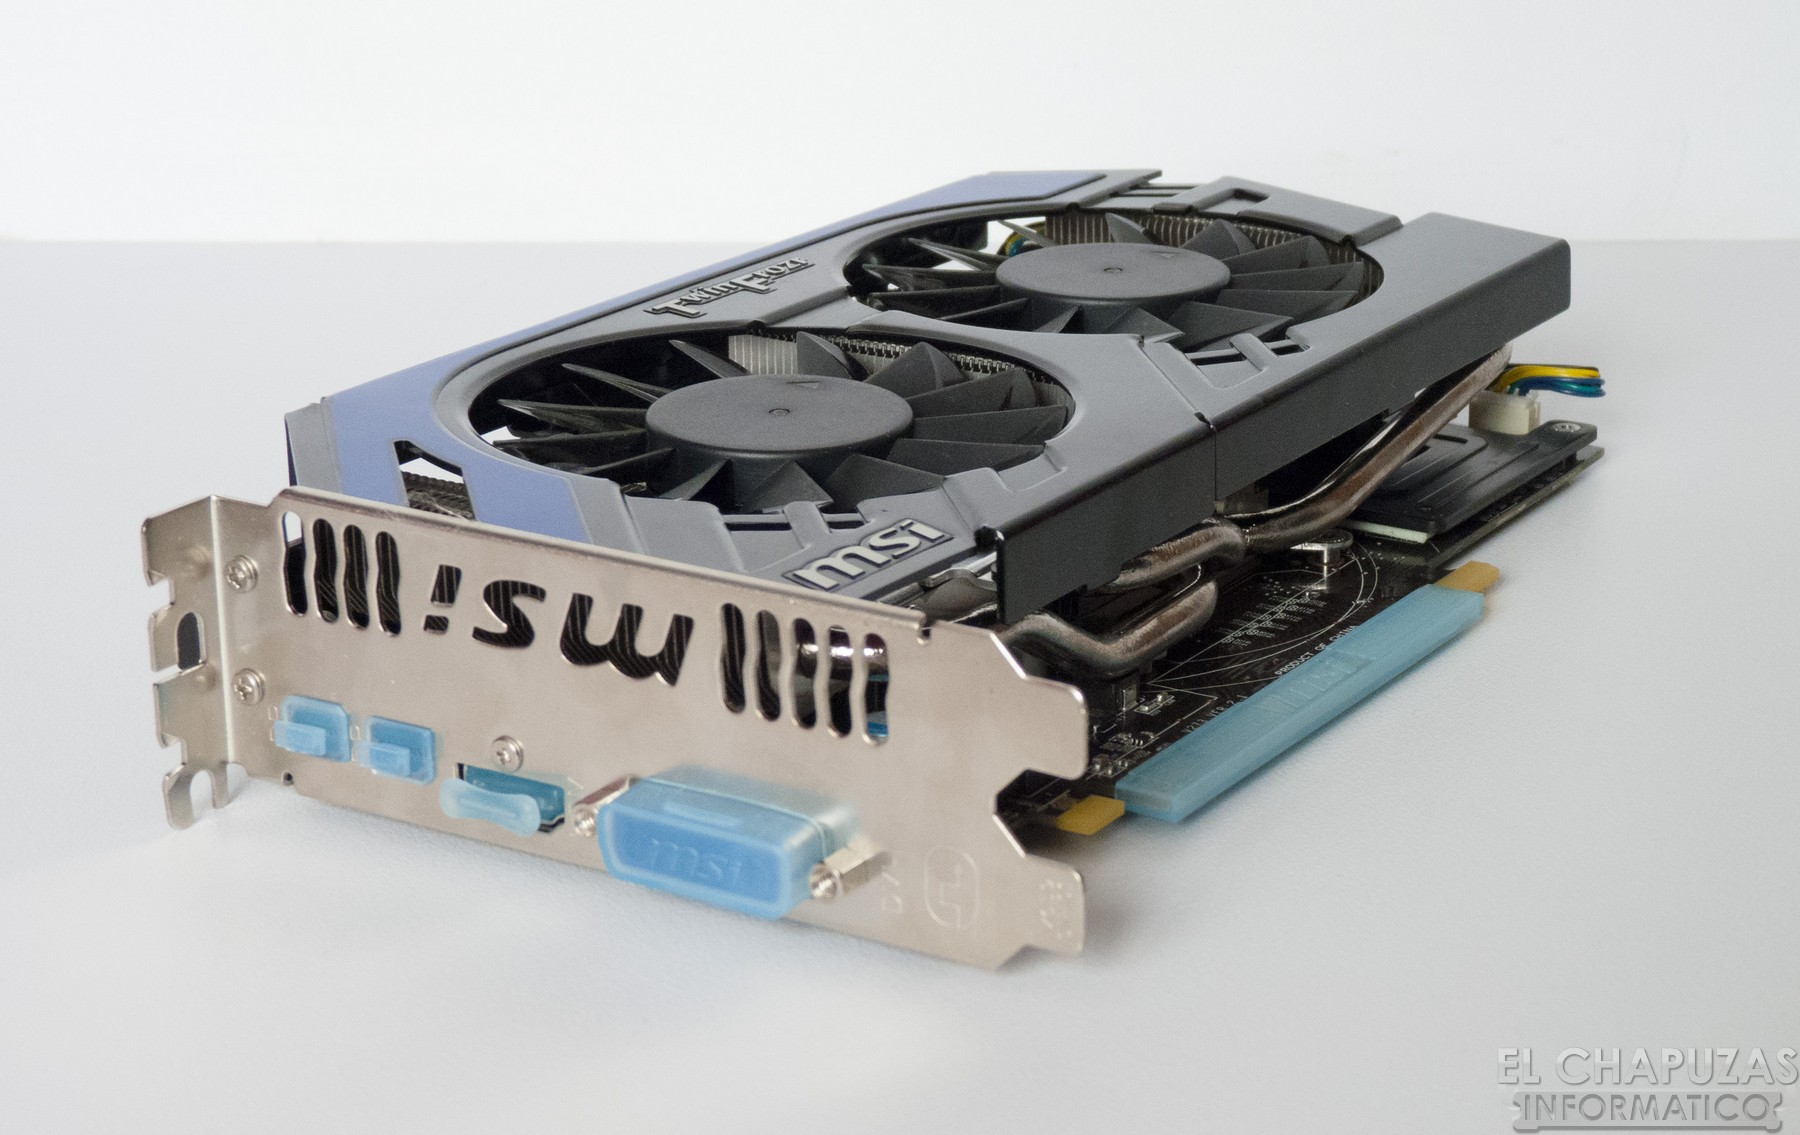 Review: MSI R7850 Power Edition